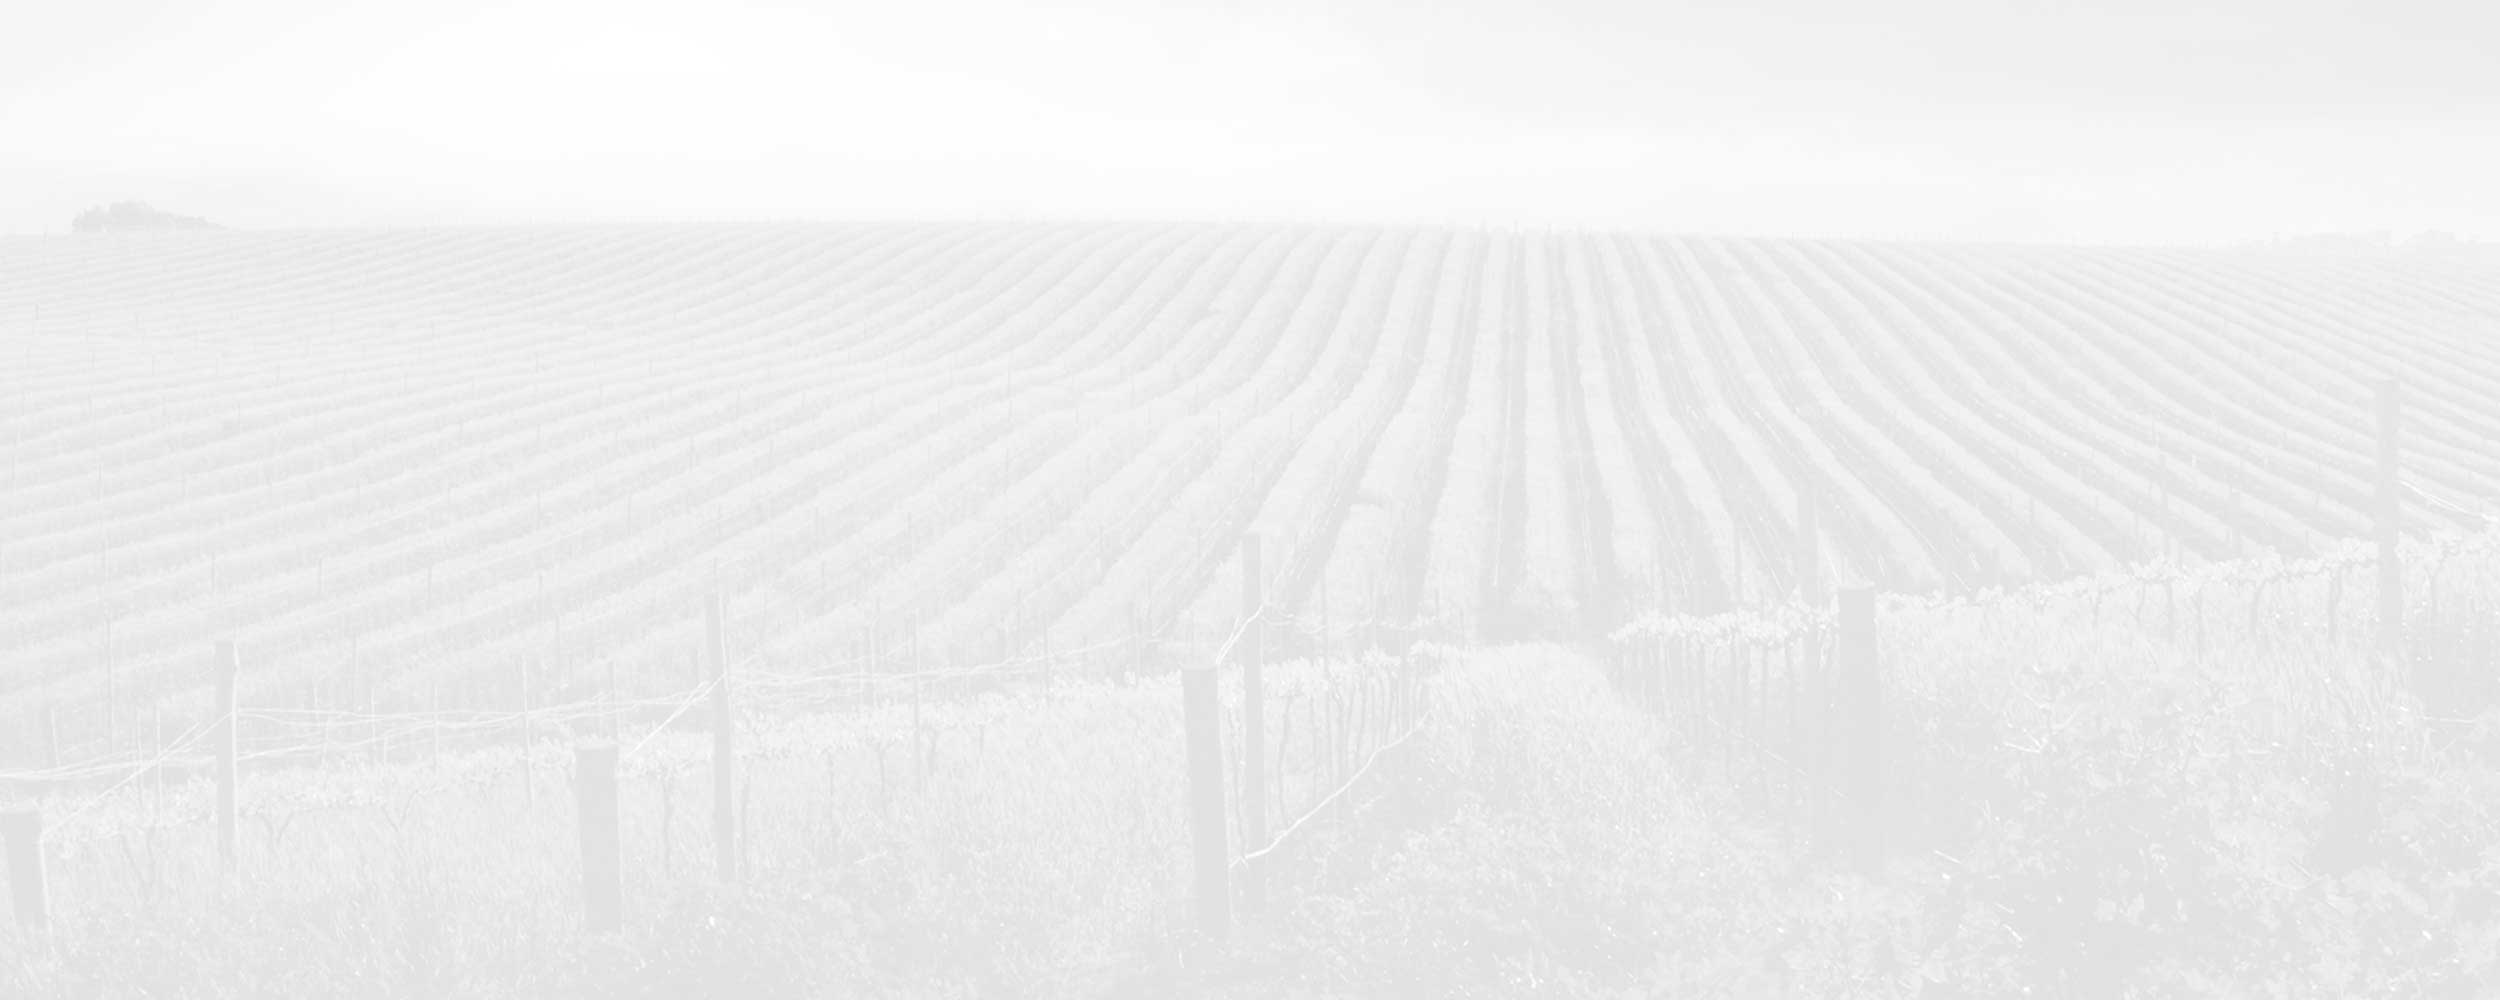 Grayscale background photo of a winery vineyard